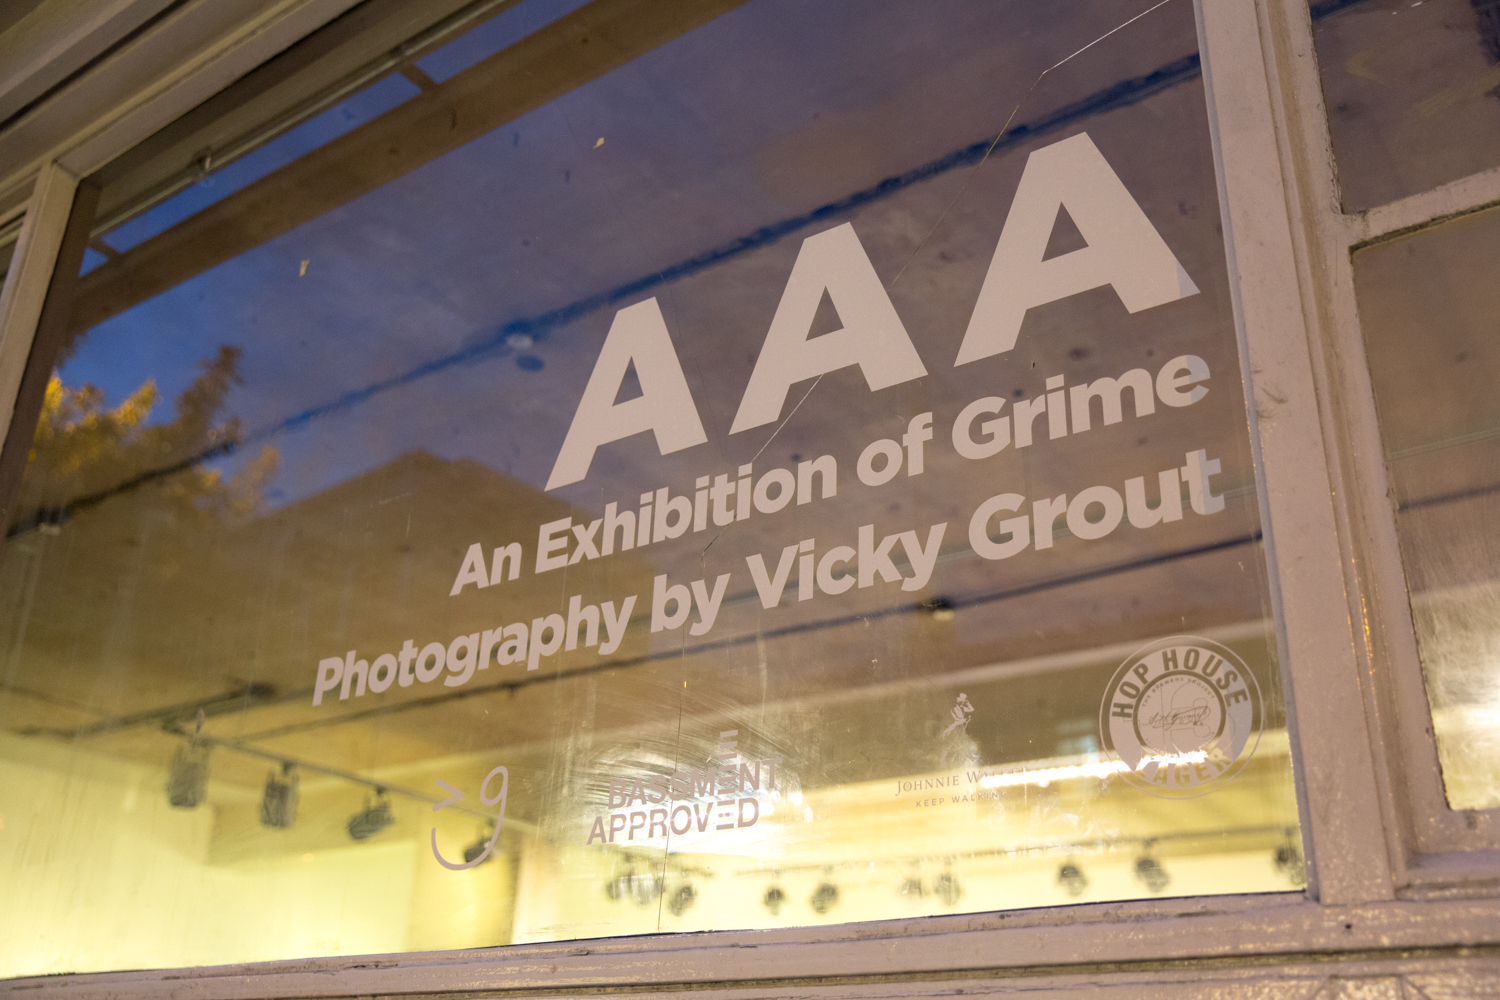 AAA – An Exhibition of Grime Photography by Vicky Grout